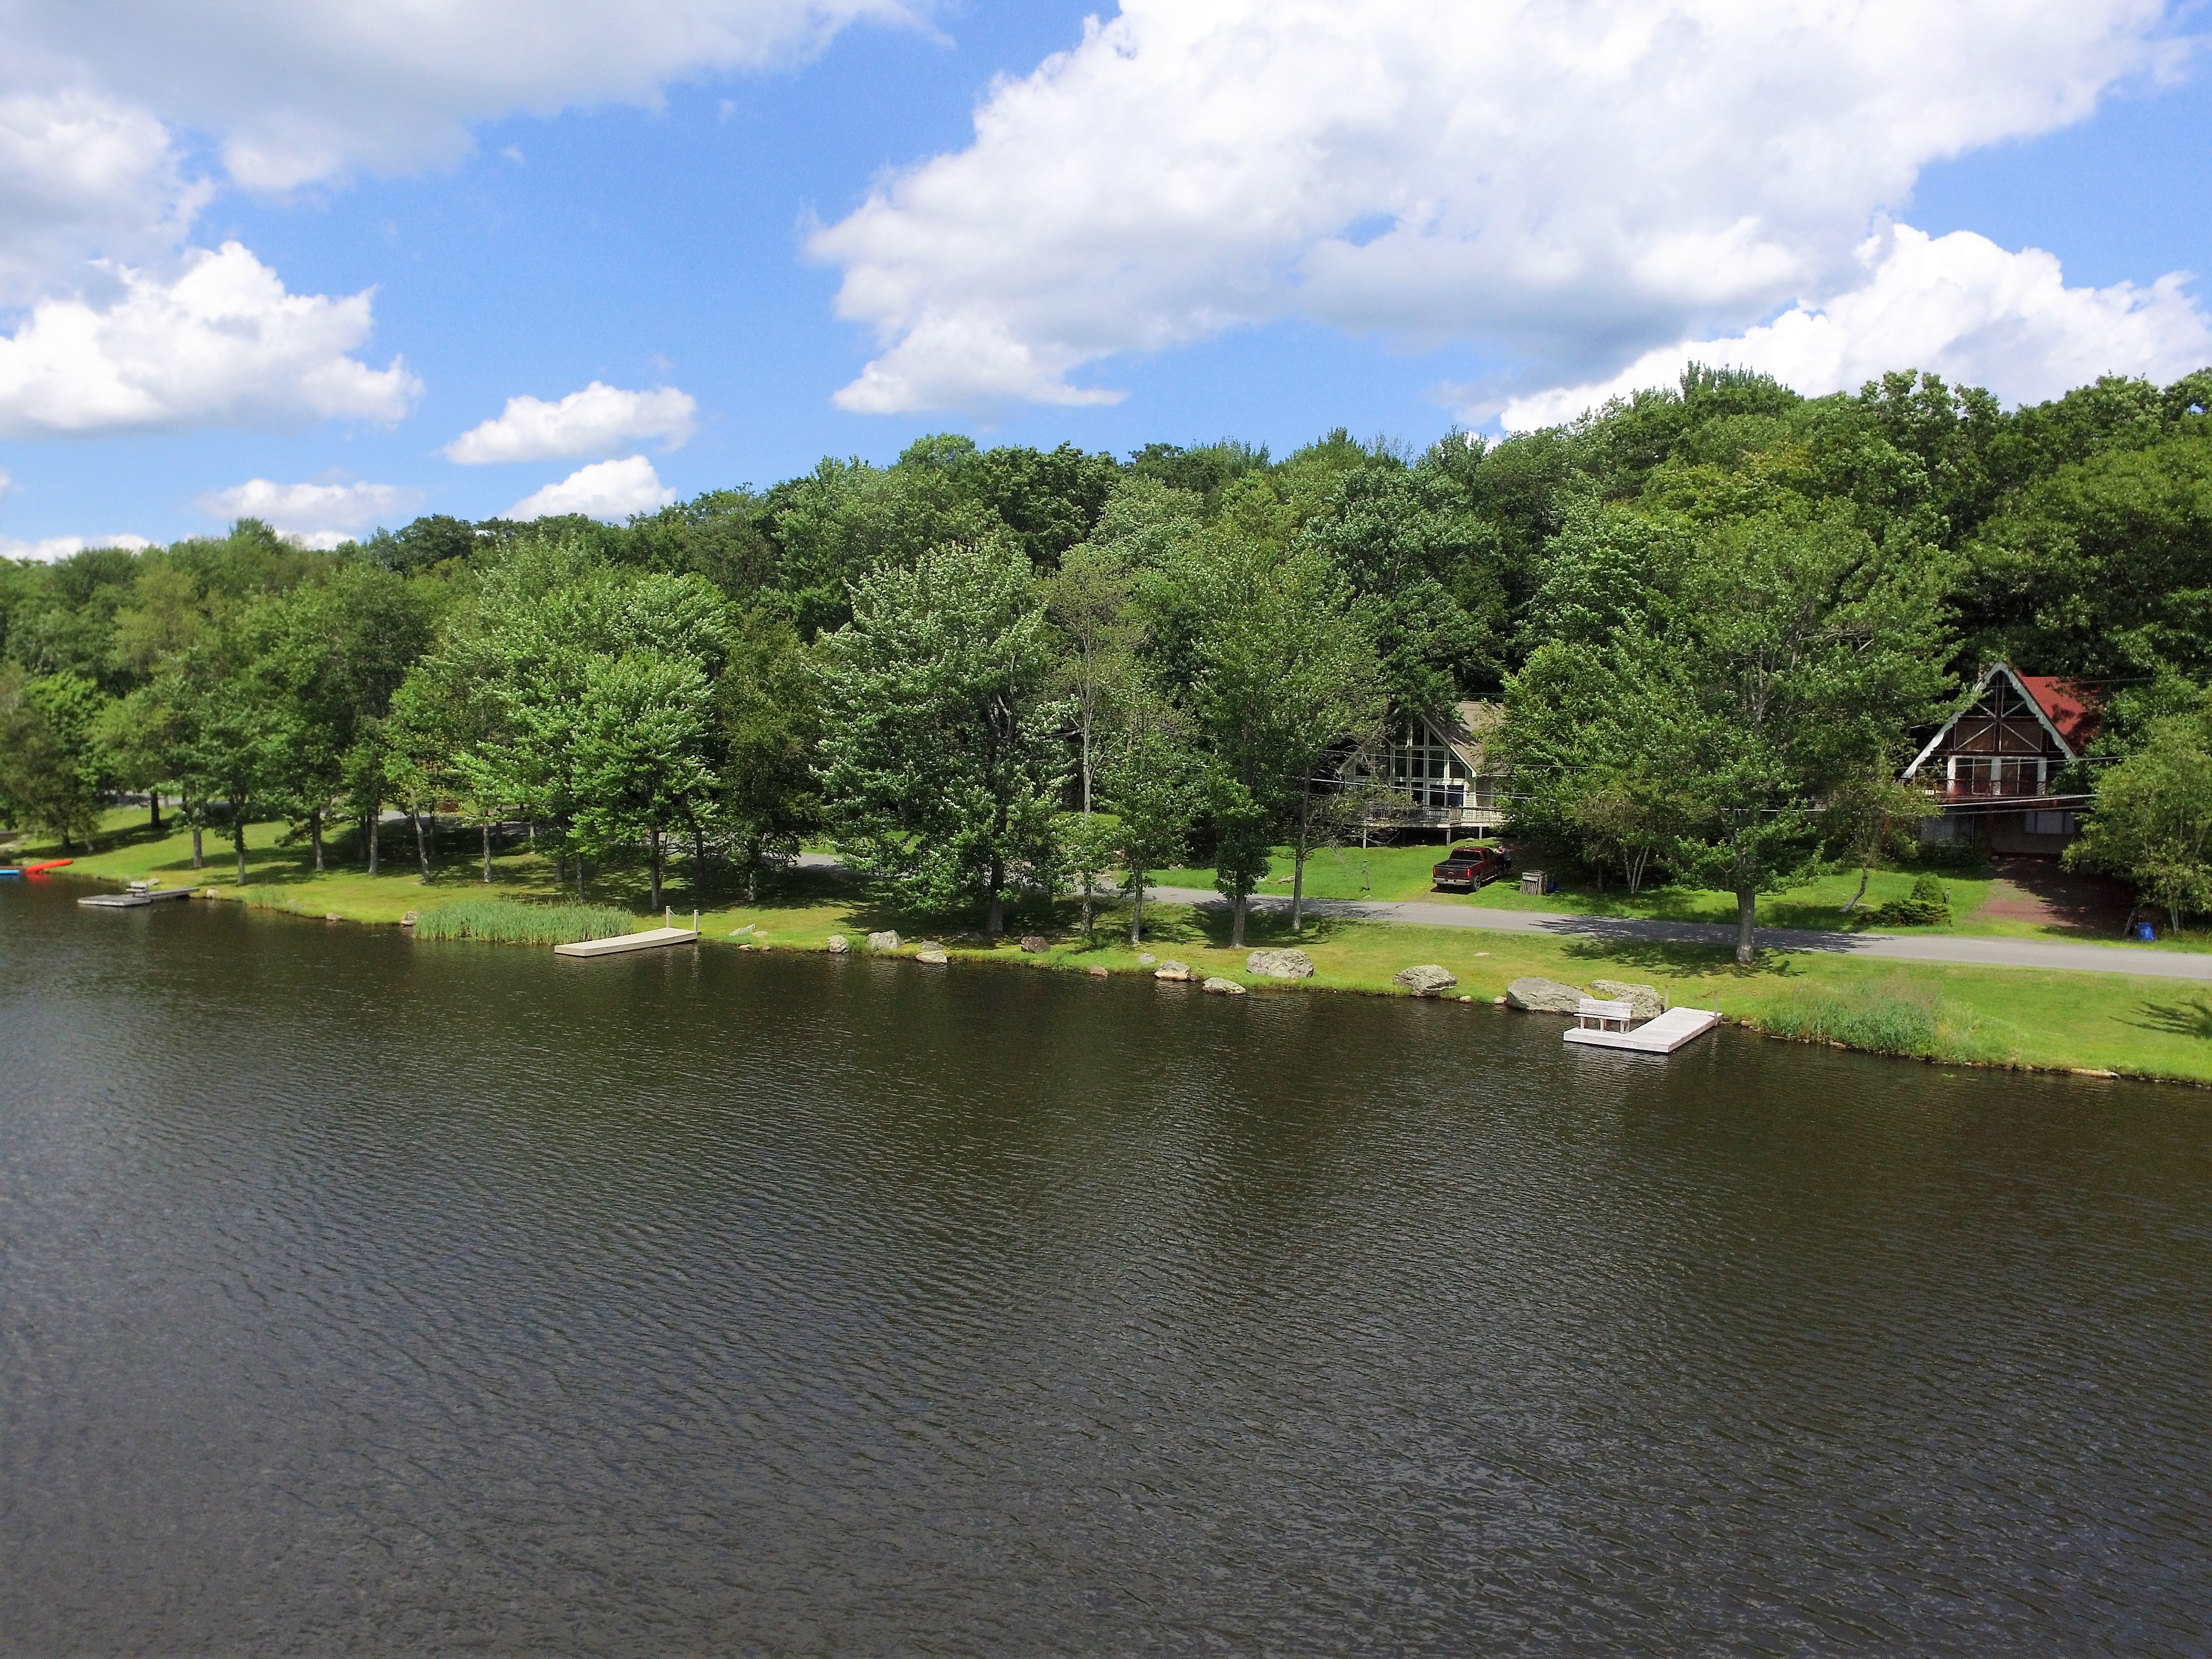 Flying over locust lake in pocono lake pa living pocono contact me matt cordisco at 570 620 6127 and lets see how we can help you get that pocono peace of mind publicscrutiny Gallery